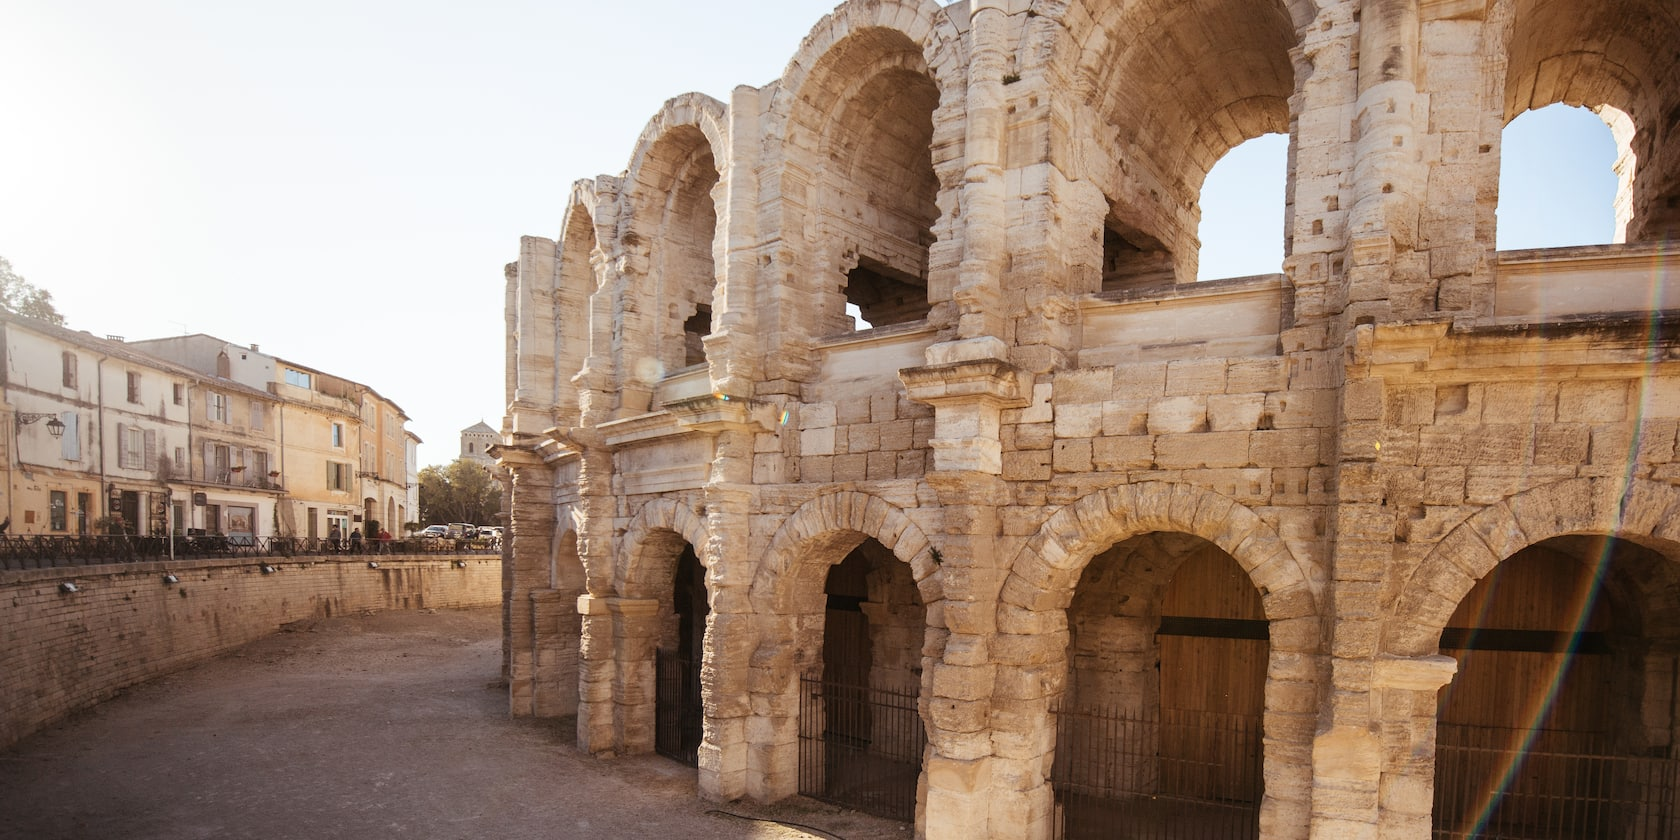 The Arles Amphitheatre in Arles, France